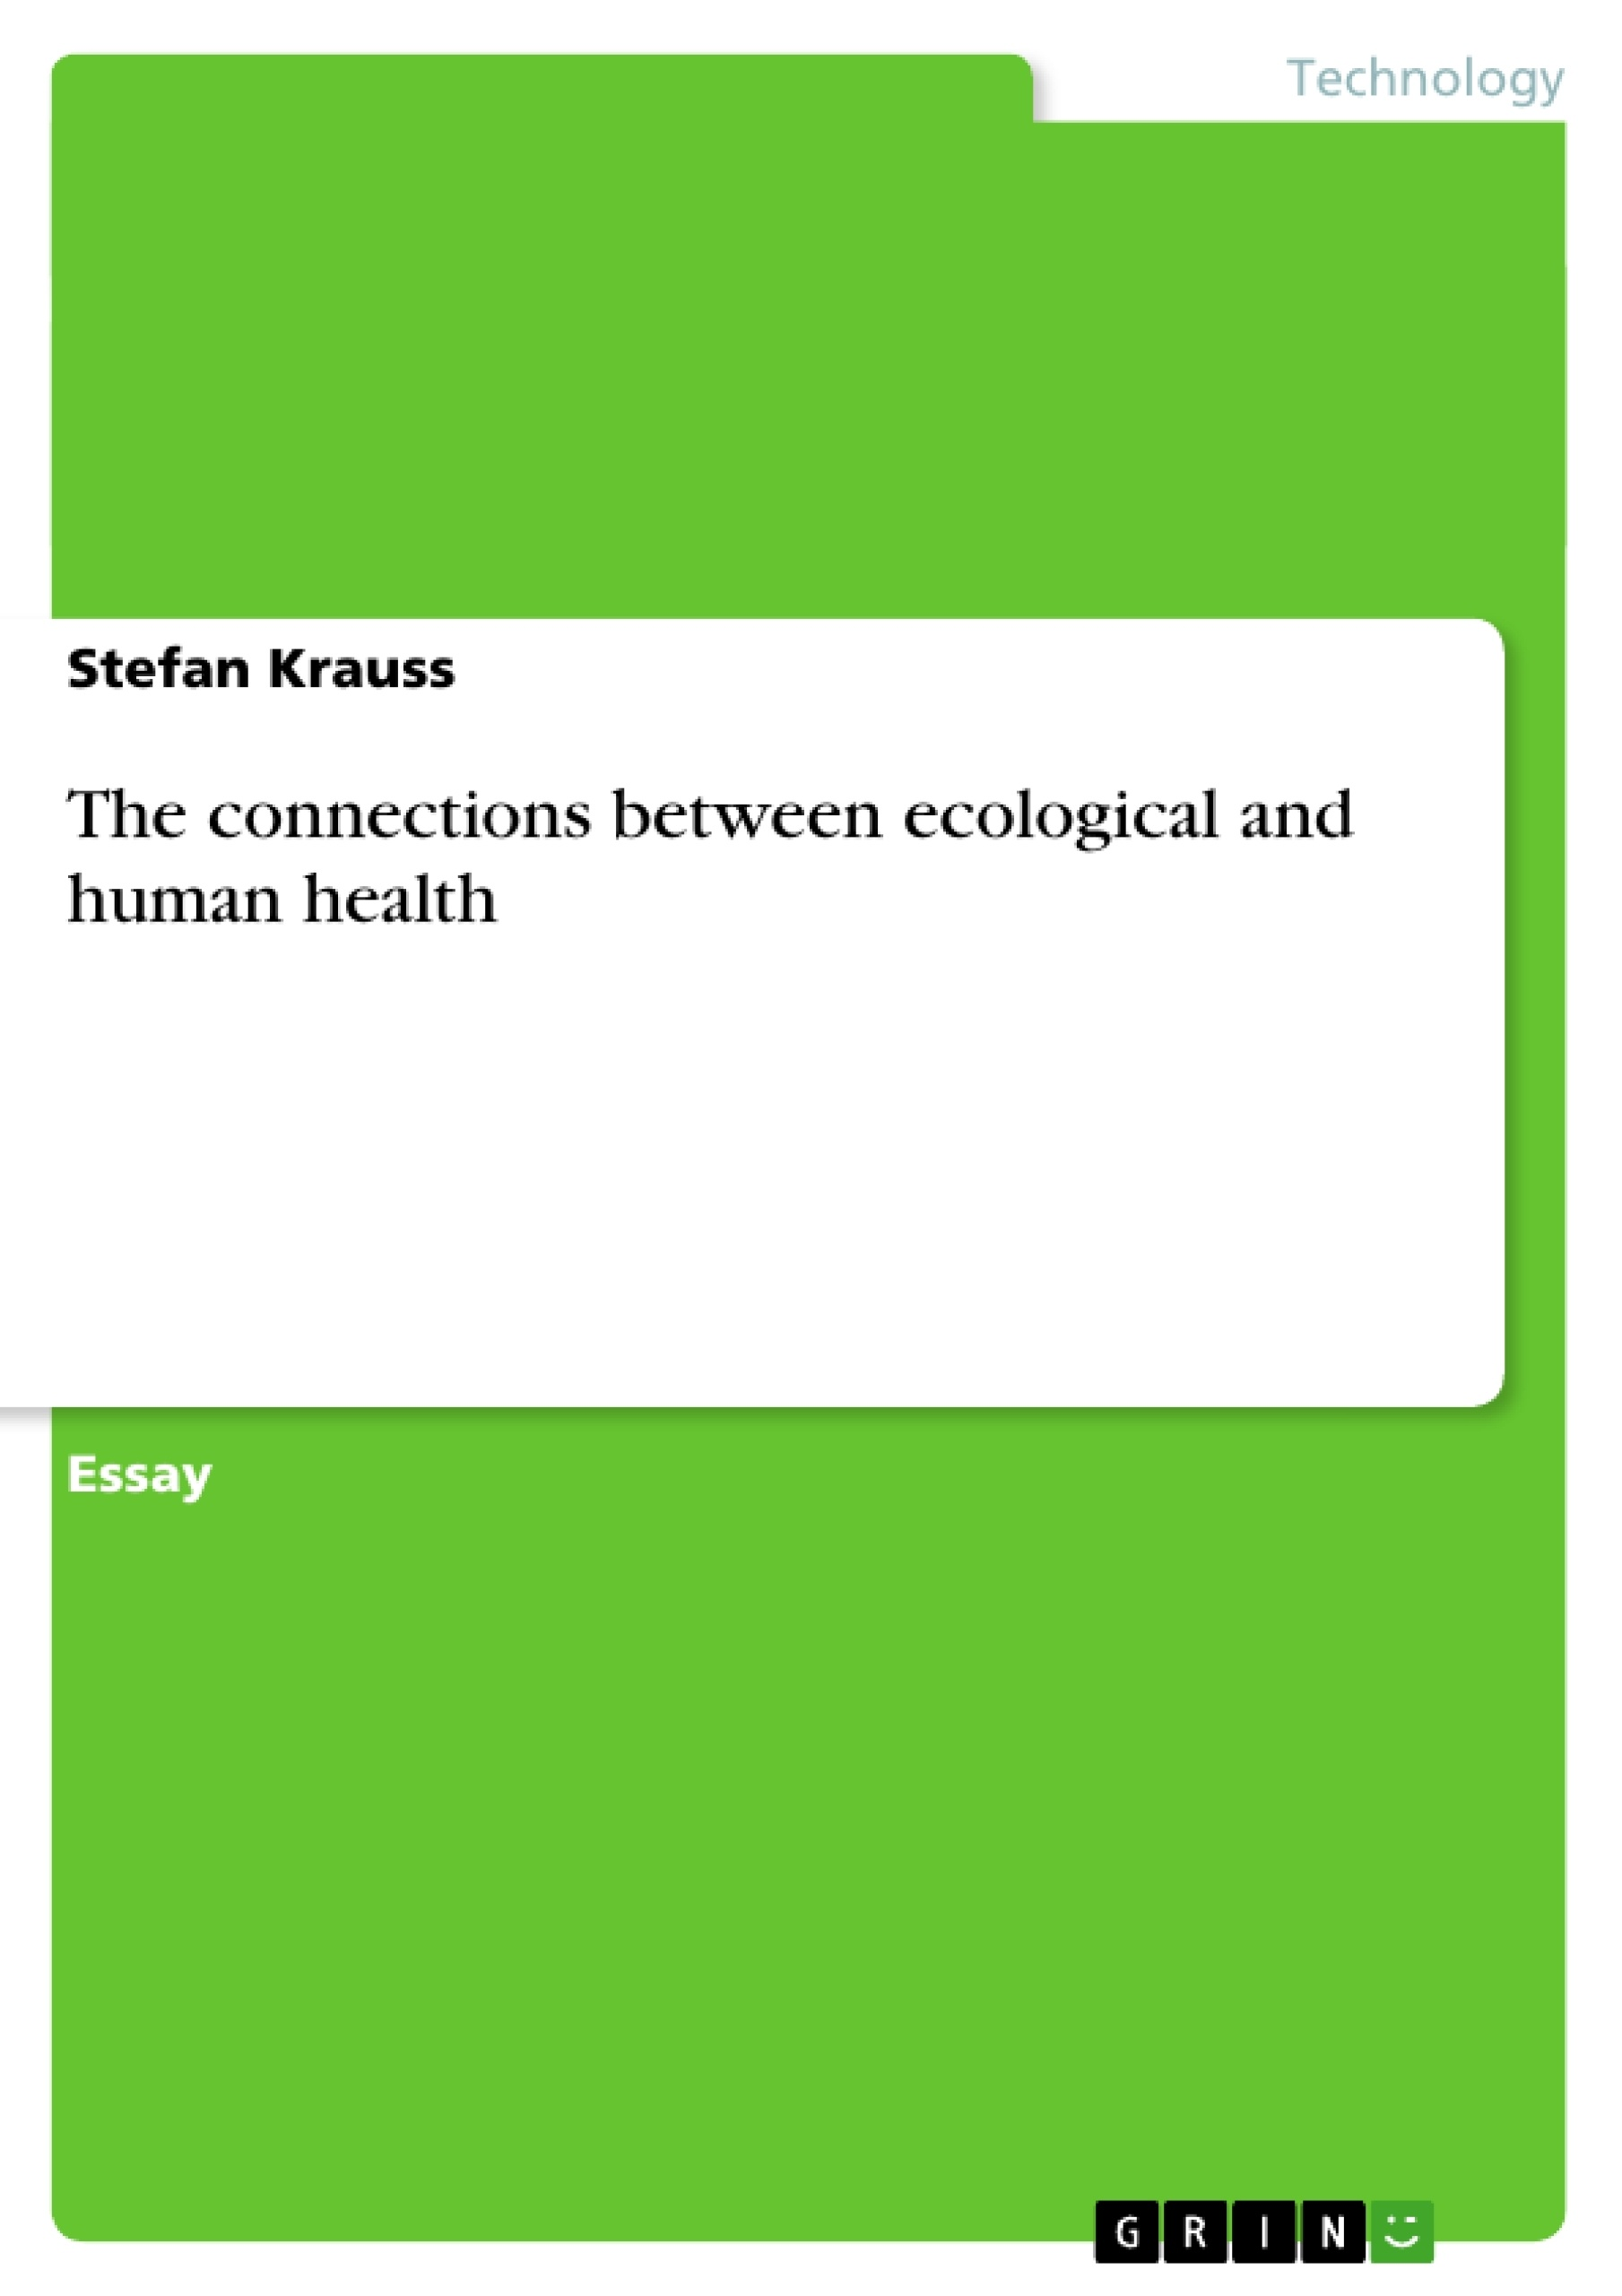 Title: The connections between ecological and human health